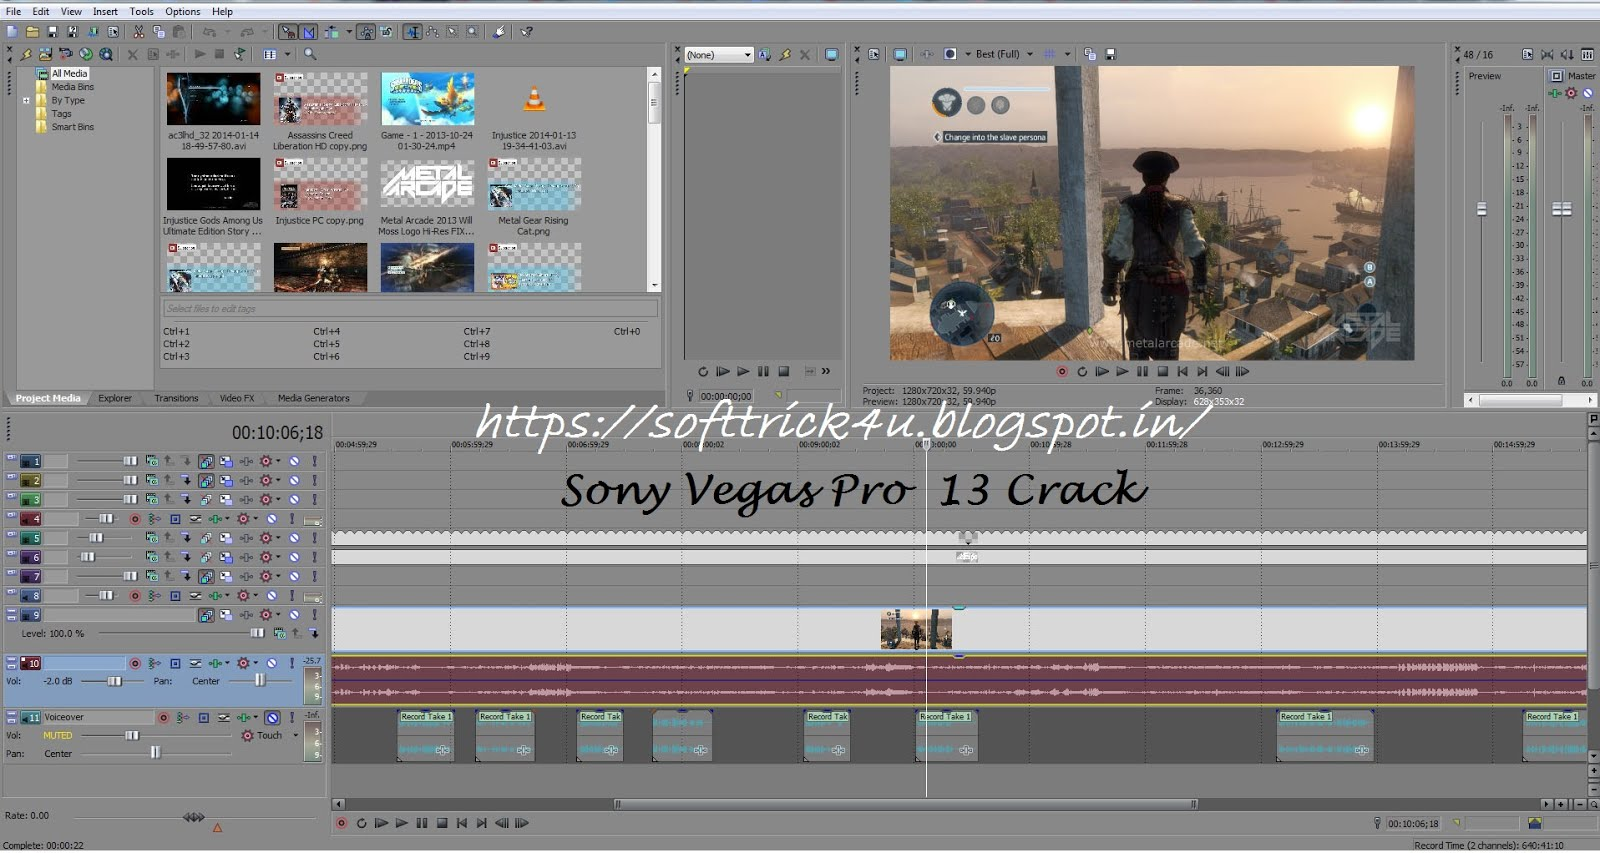 Sony Vega Pro 13 Sony Vegas Pro 13 Crack Video Editor Soft S Crack And More Tricks